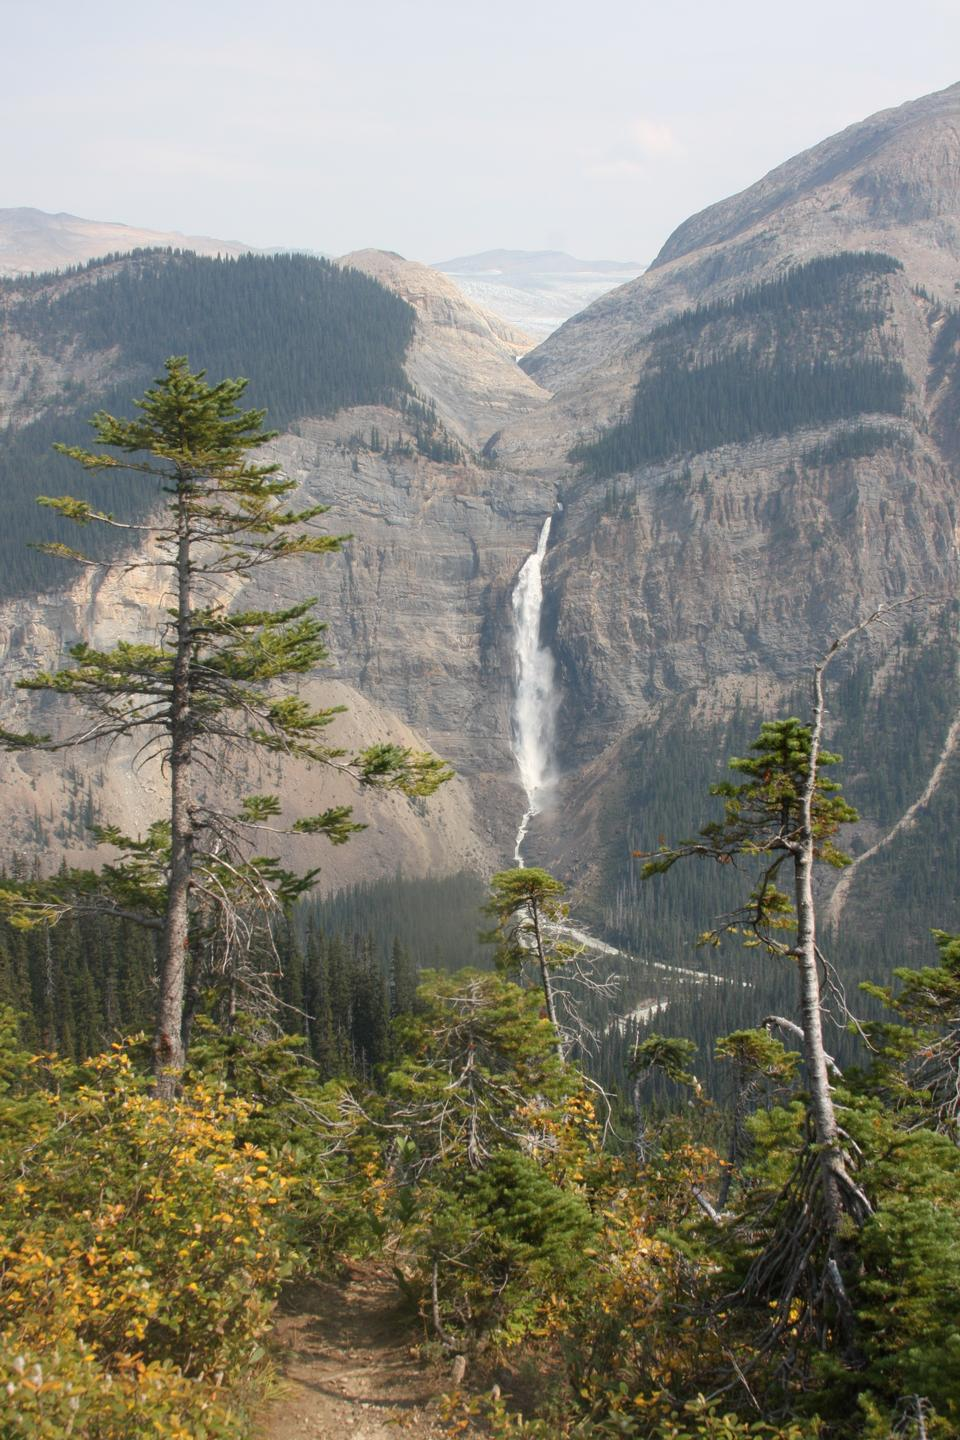 Takakkaw Falls in Yoho National Park, British Columbia